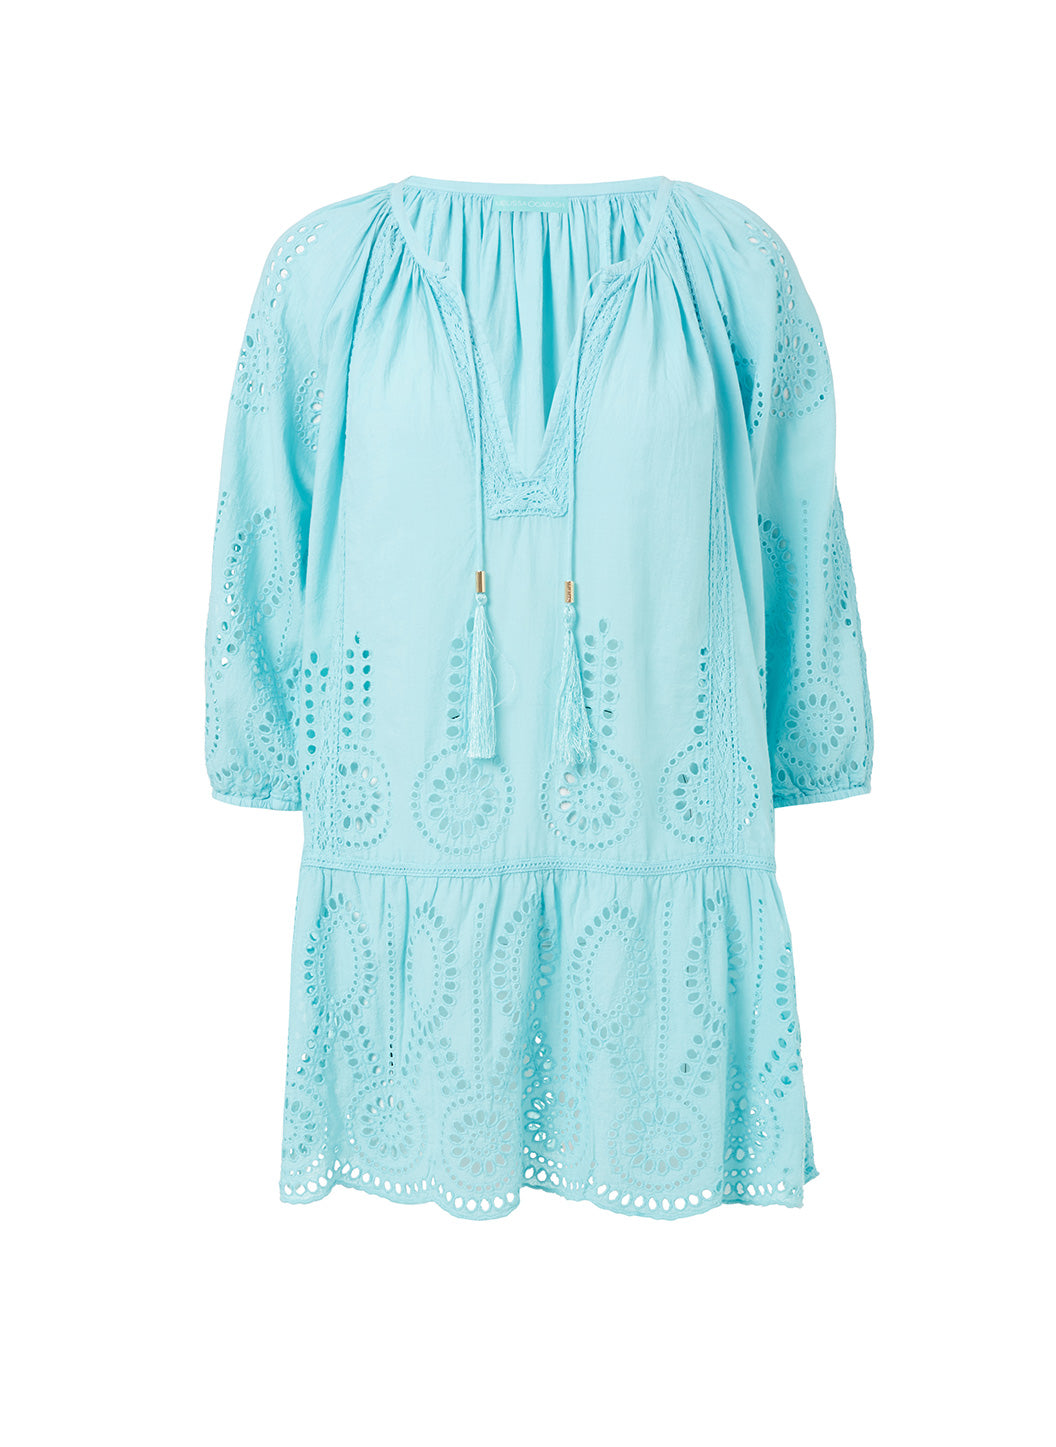 Ashley Sky Embroidered 3/4 Sleeve Short Cover-Up  - Melissa Odabash Dresses & Kaftans